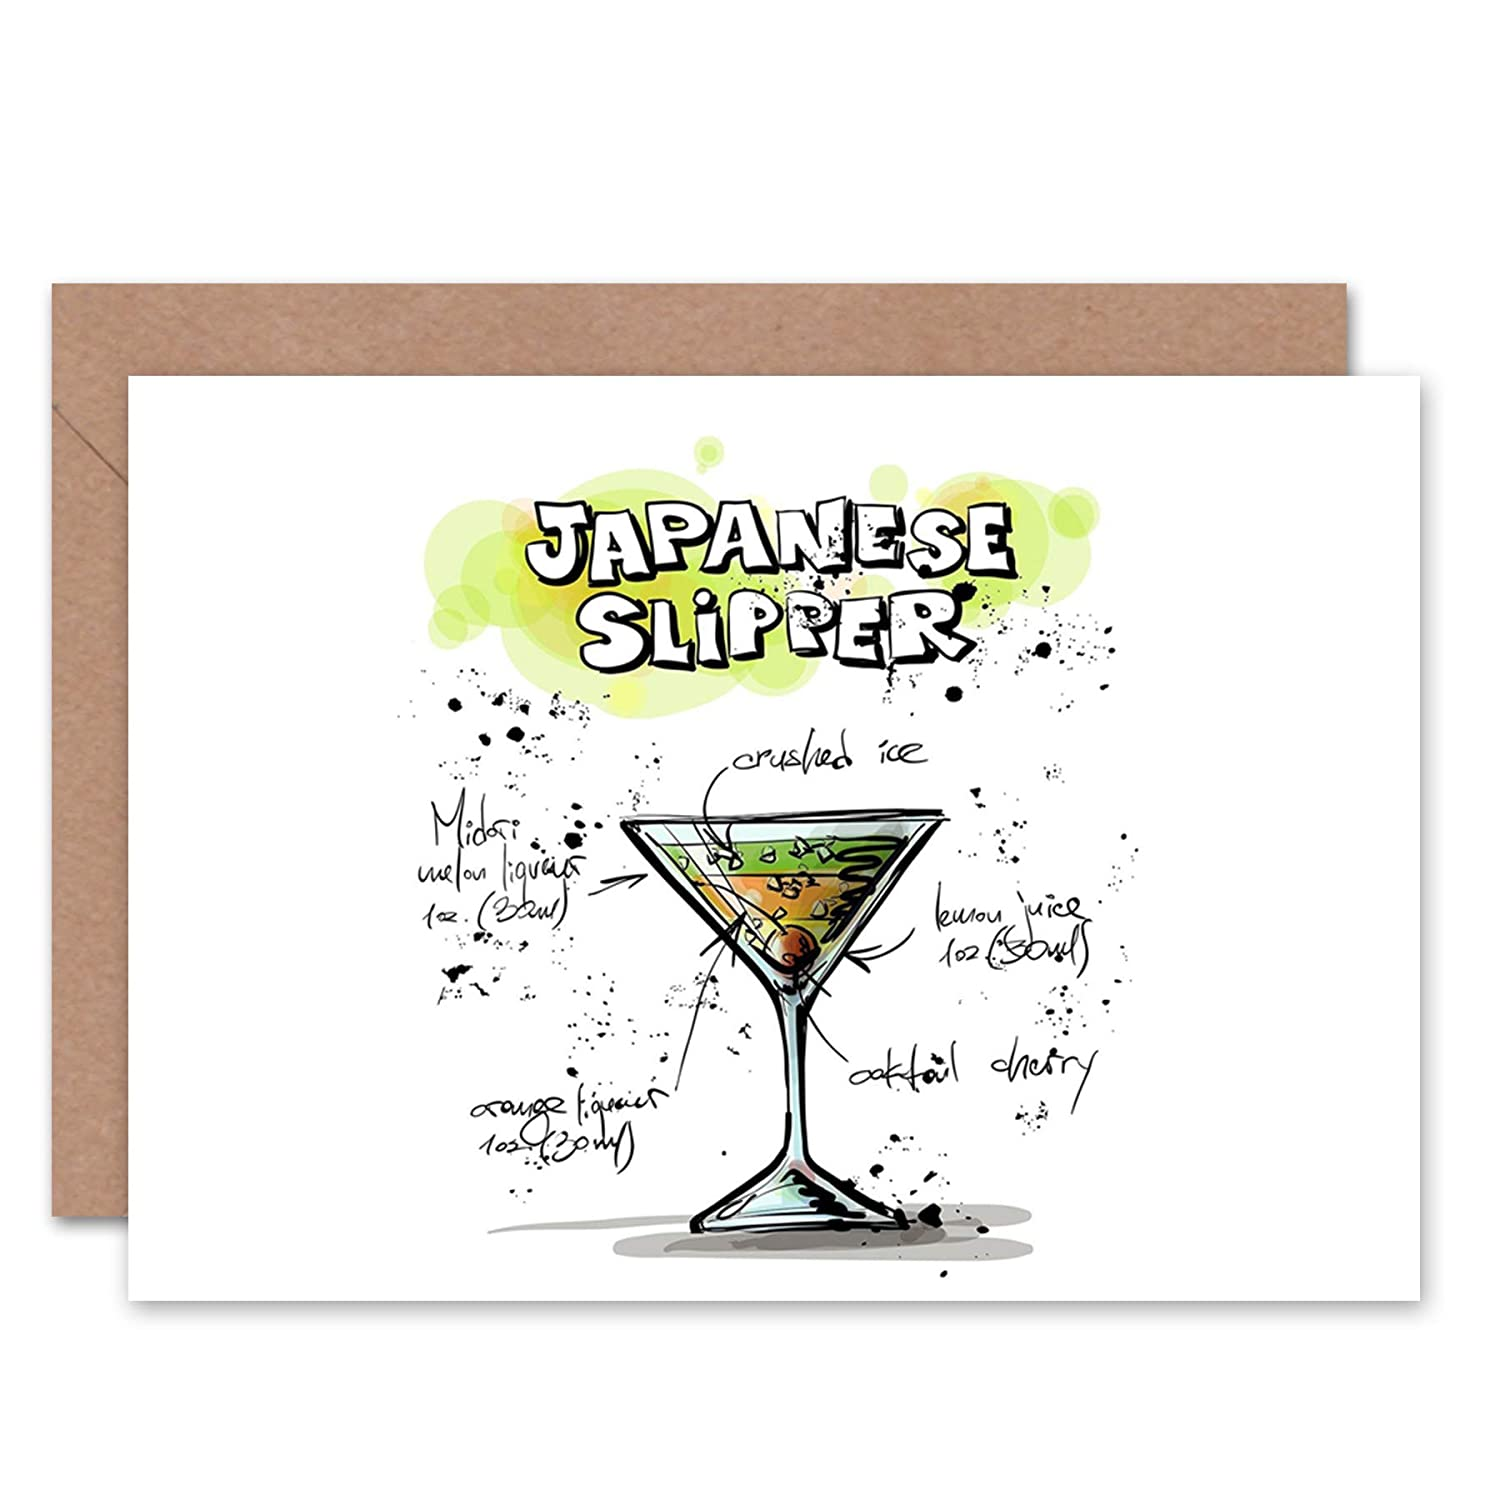 fd6e1968f46ad Amazon.com  Wee Blue Coo NEW JAPANESE SLIPPER COCKTAIL DRINK BLANK  GREETINGS BIRTHDAY CARD ART CL333  Home   Kitchen